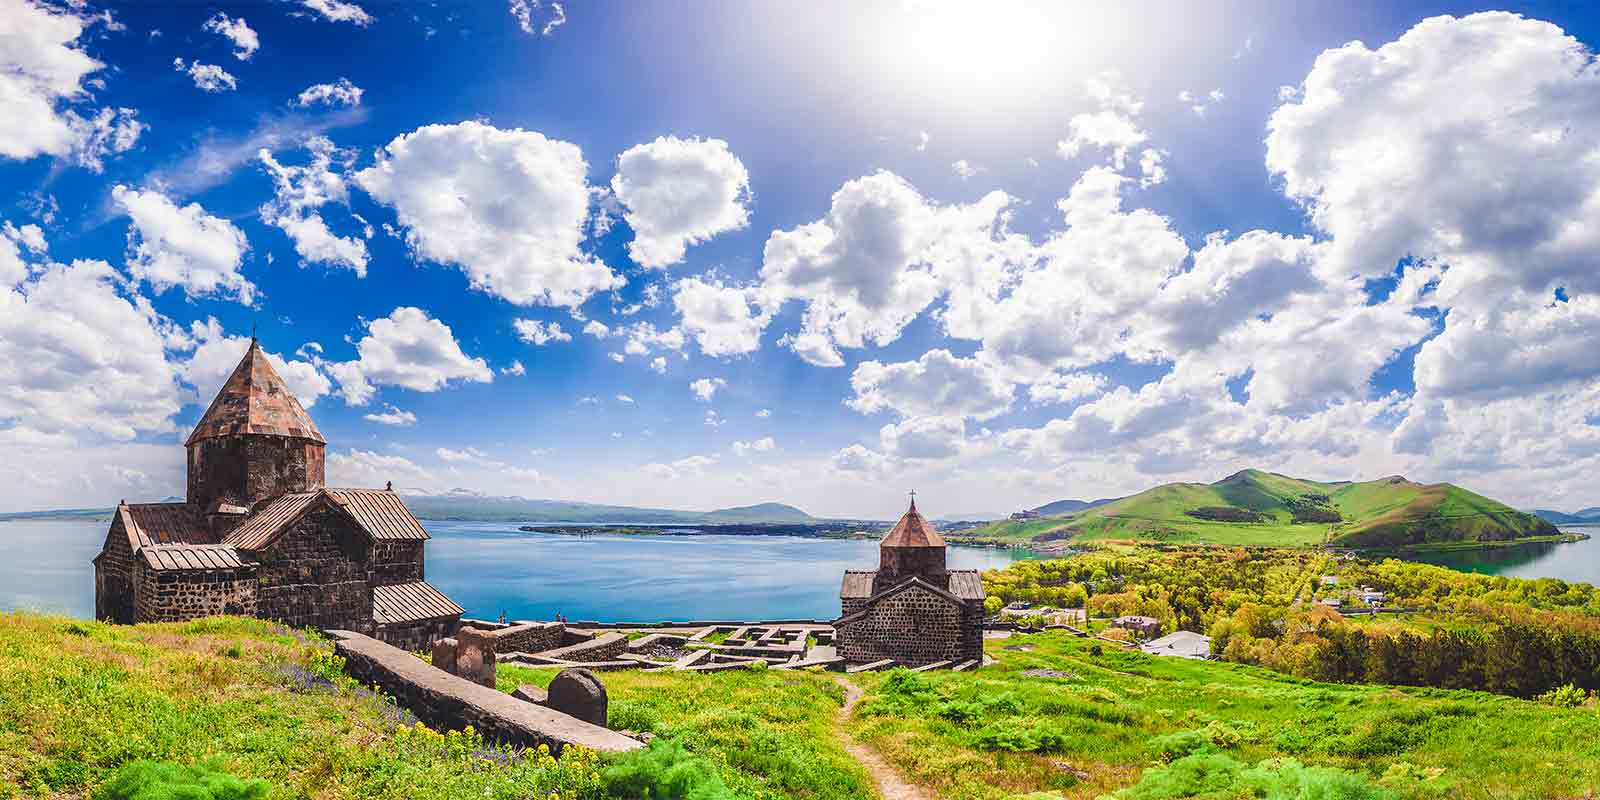 Sevan Temple on the shores of Lake Sevan